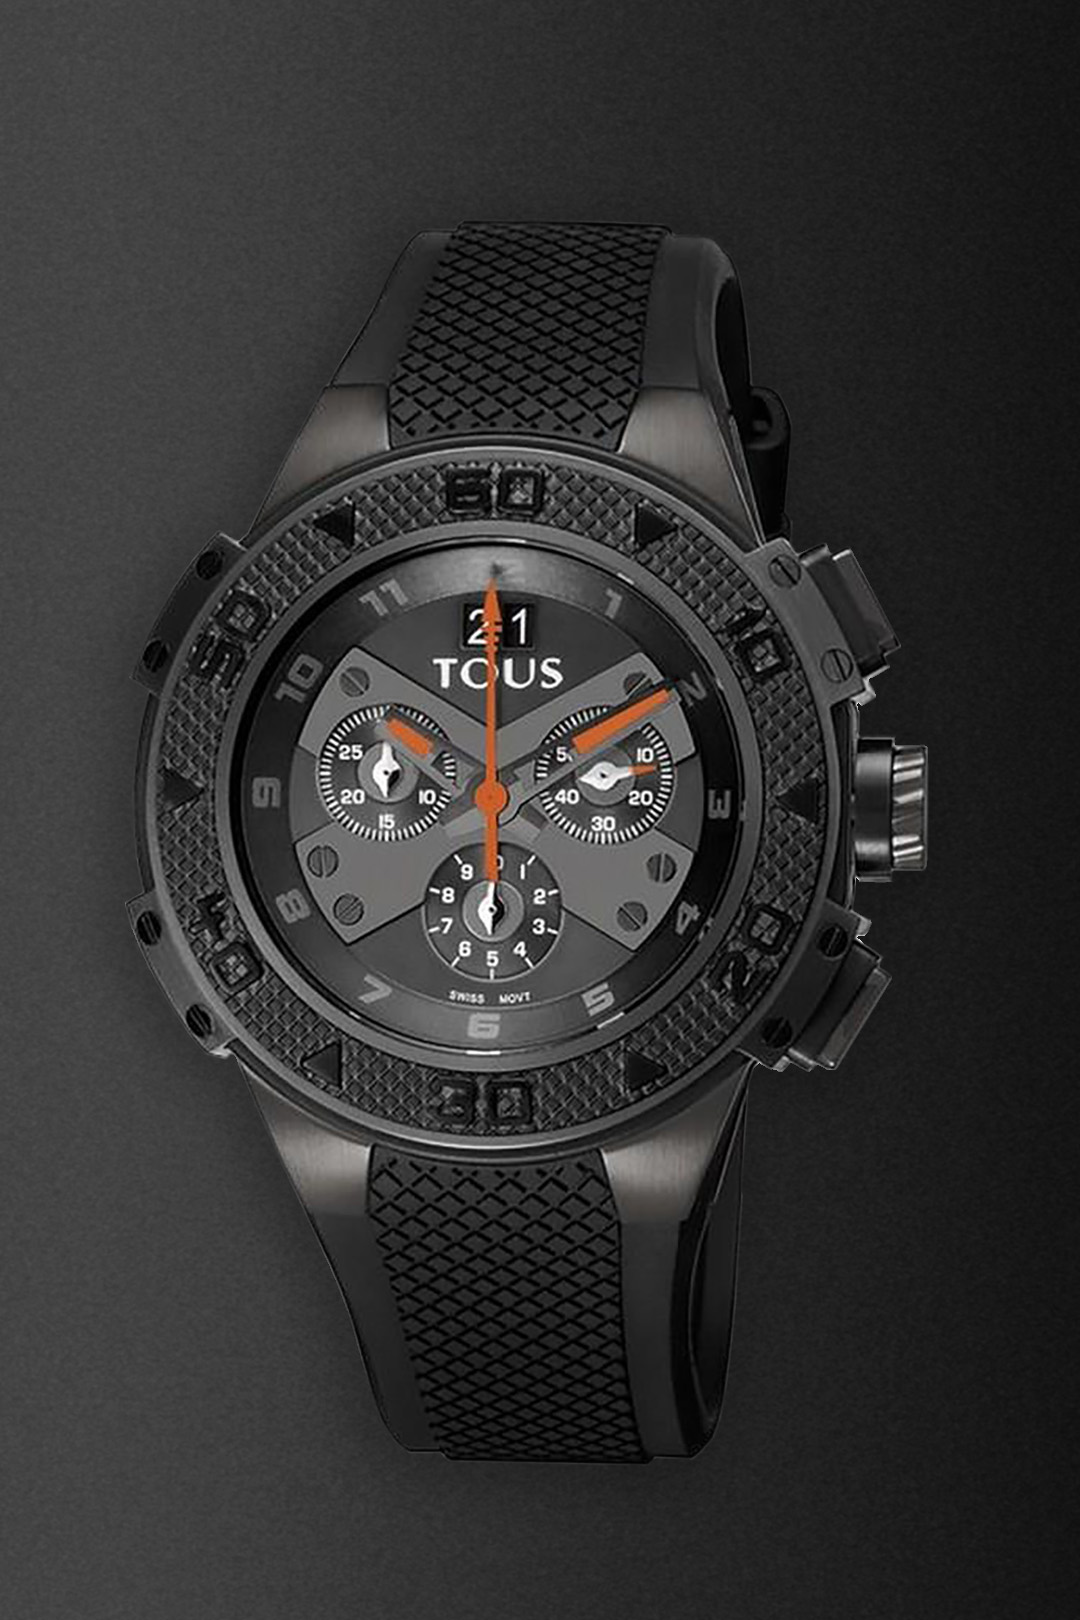 watch design Front view of the X-Tous chronograph watch